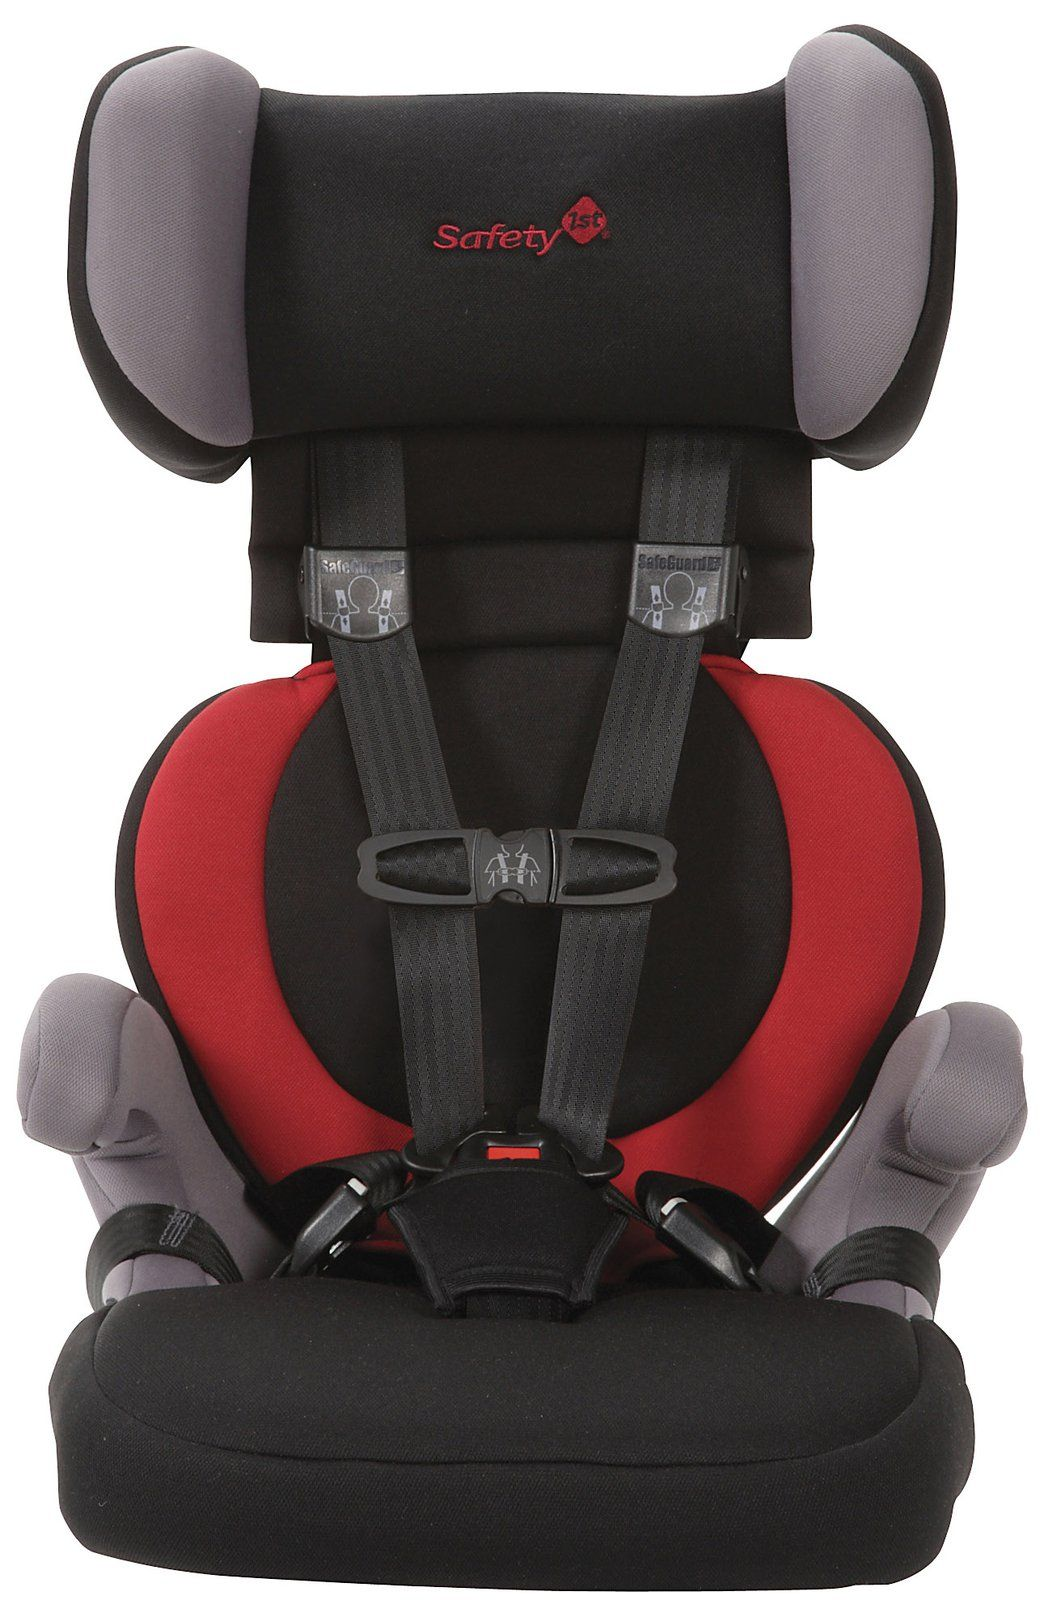 Safety 1st Go Hybrid Booster Car Seat Good Portable Harness Carseat Option